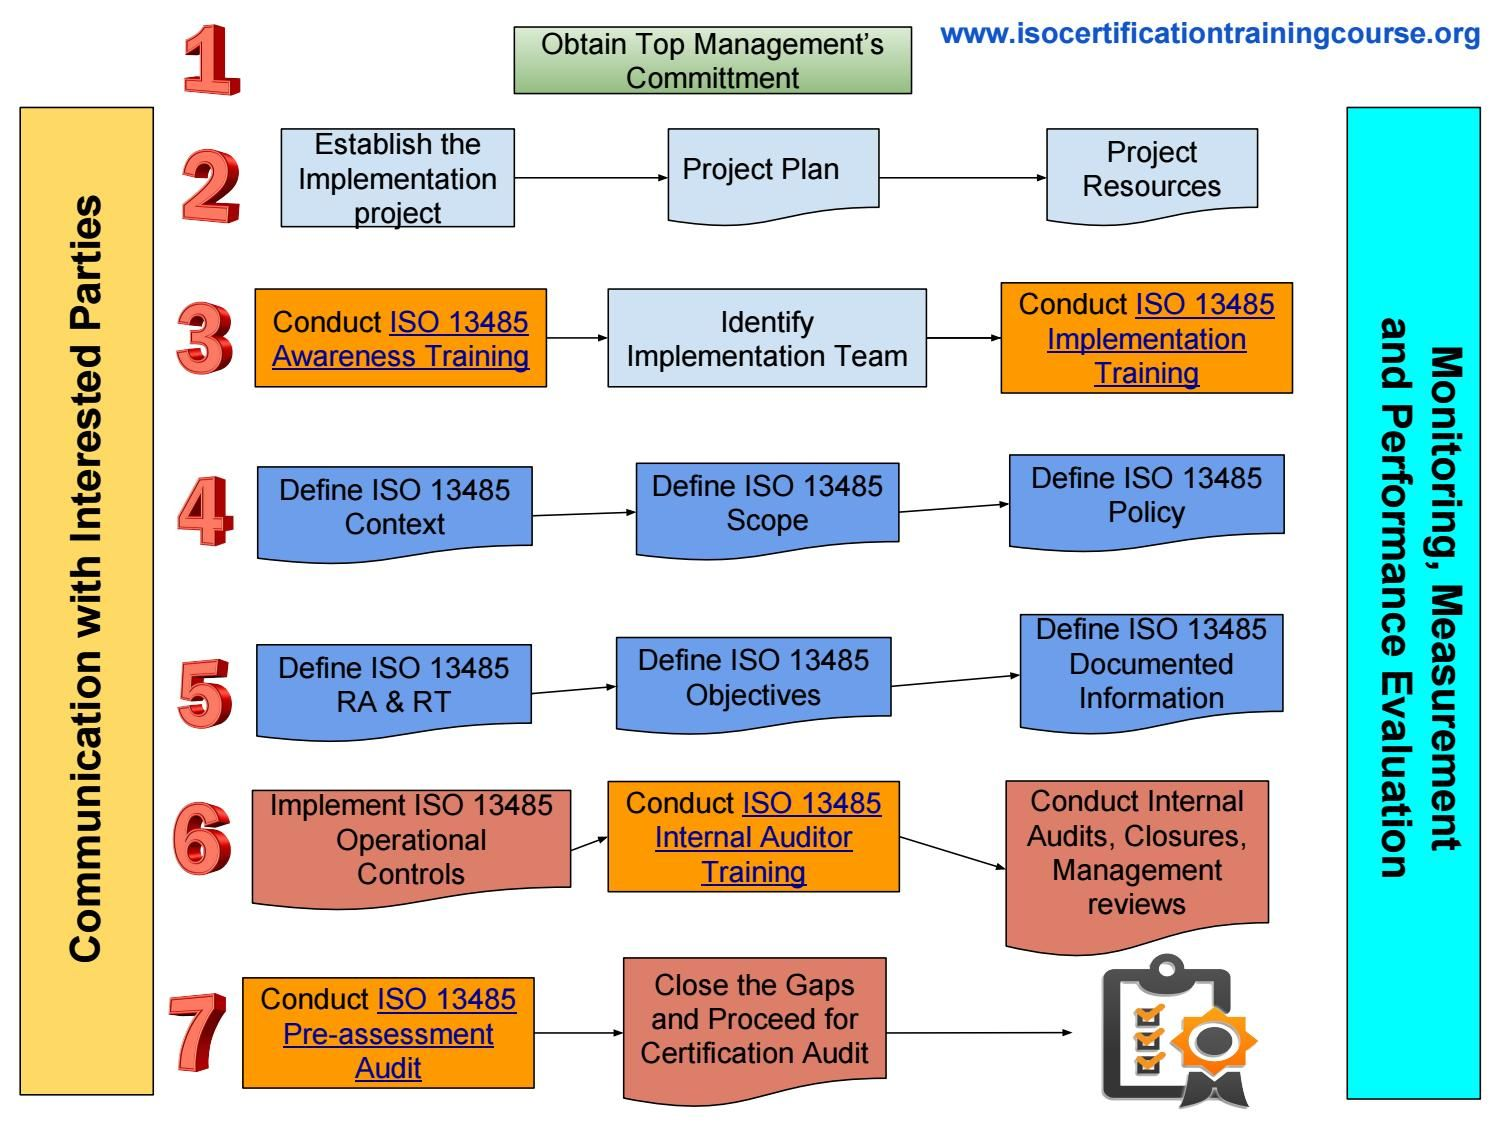 How To Prepare For Iso 13485 Certification Process Step By Step